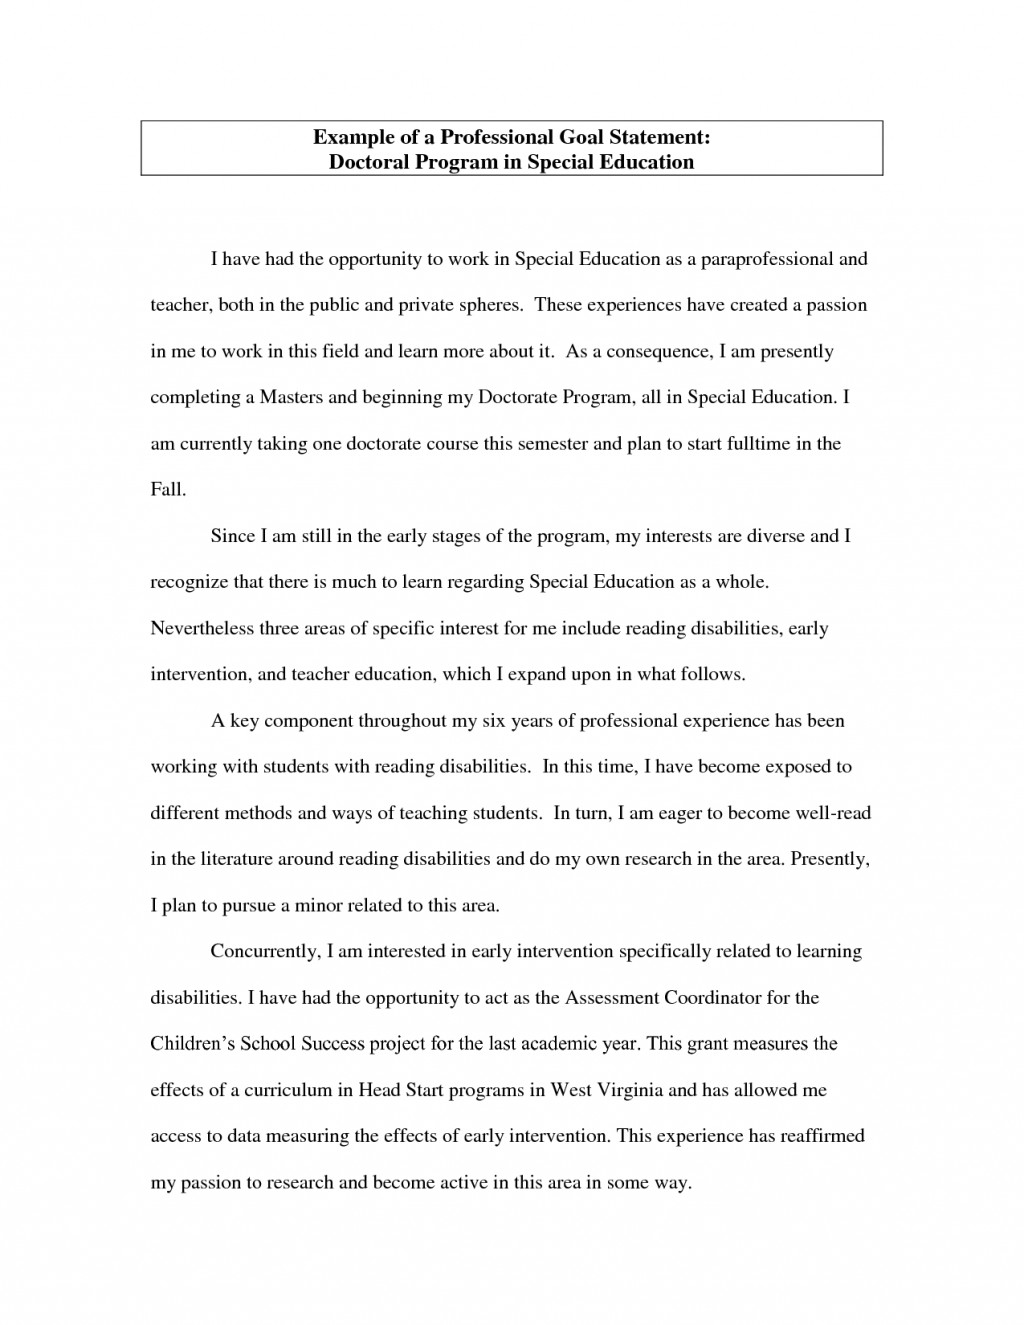 006 Academic Essay Example Career Goal Statement Fantastic 1500 Words Pdf 1000 Paper Introduction Sample Large